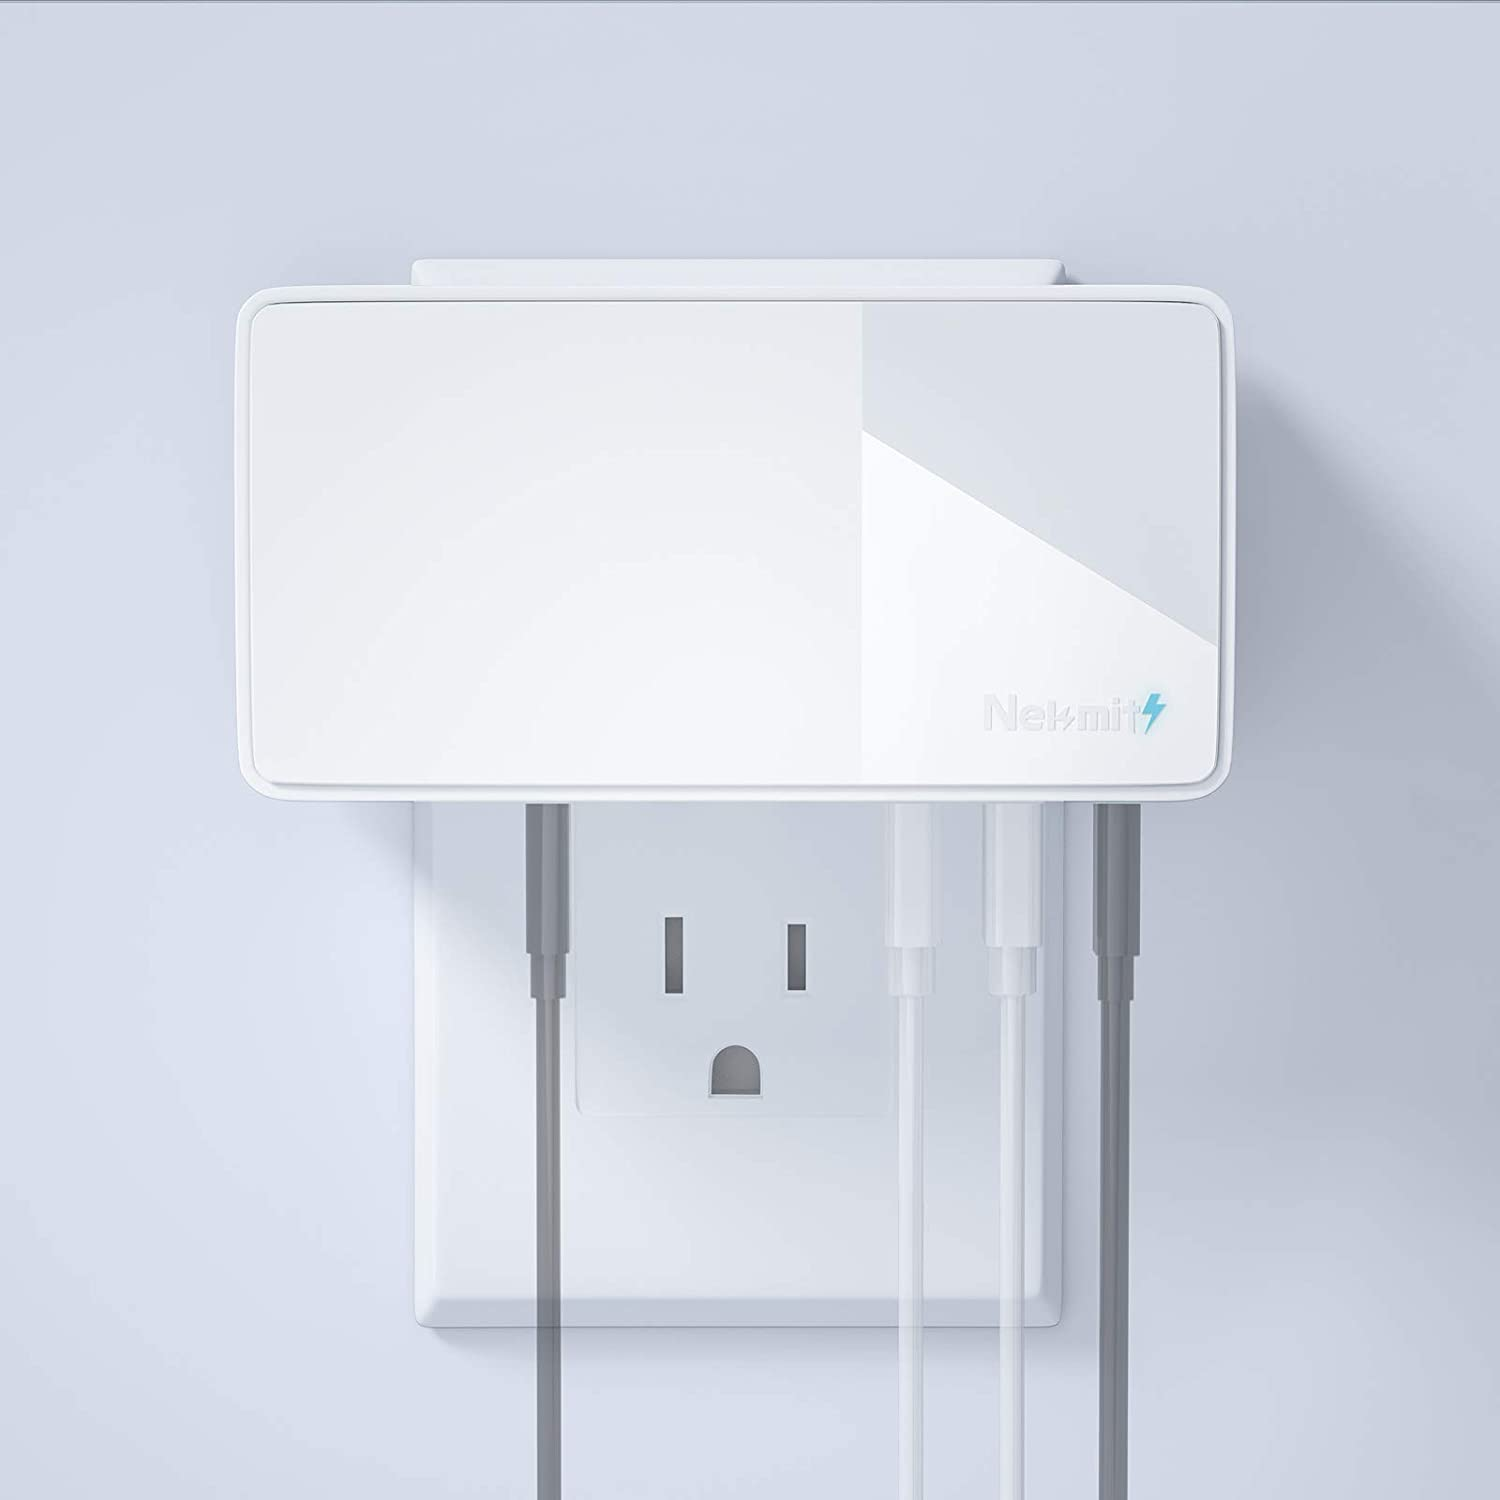 Nekmit USB C Charger, 90W 4 Port Power Delivery PD 3.0 PPS Fast Charger, for MacBook, Dell XPS 13, Galaxy S20/S10, Note 10+/10, iPhone 12/12 Pro/12 Pro Max/11/11 Pro/XR/Xs/X, iPad Pro, Pixel